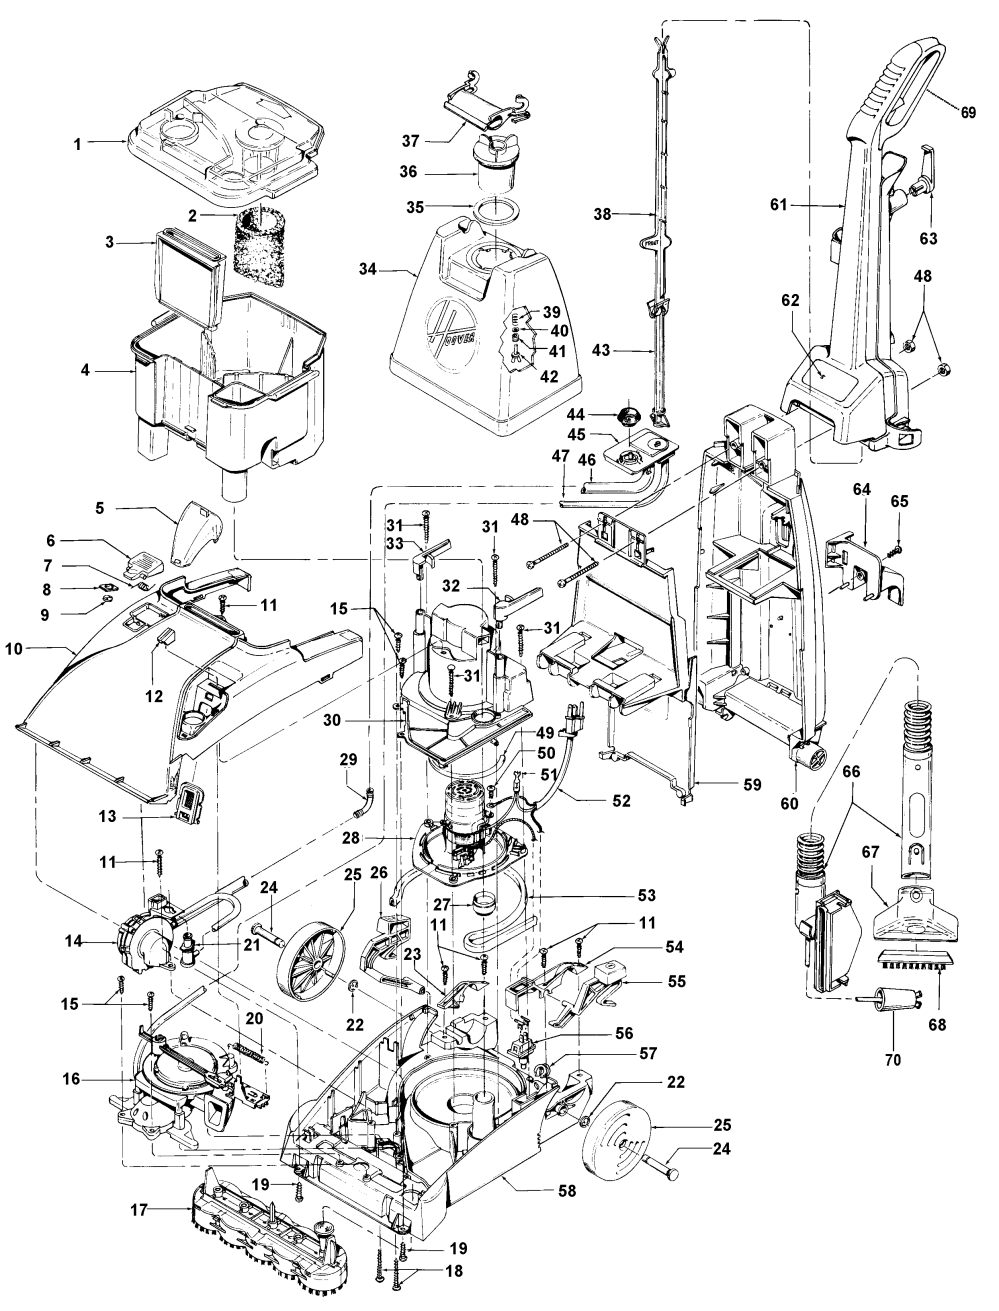 medium resolution of wiring diagram of hoover carpet cleaner